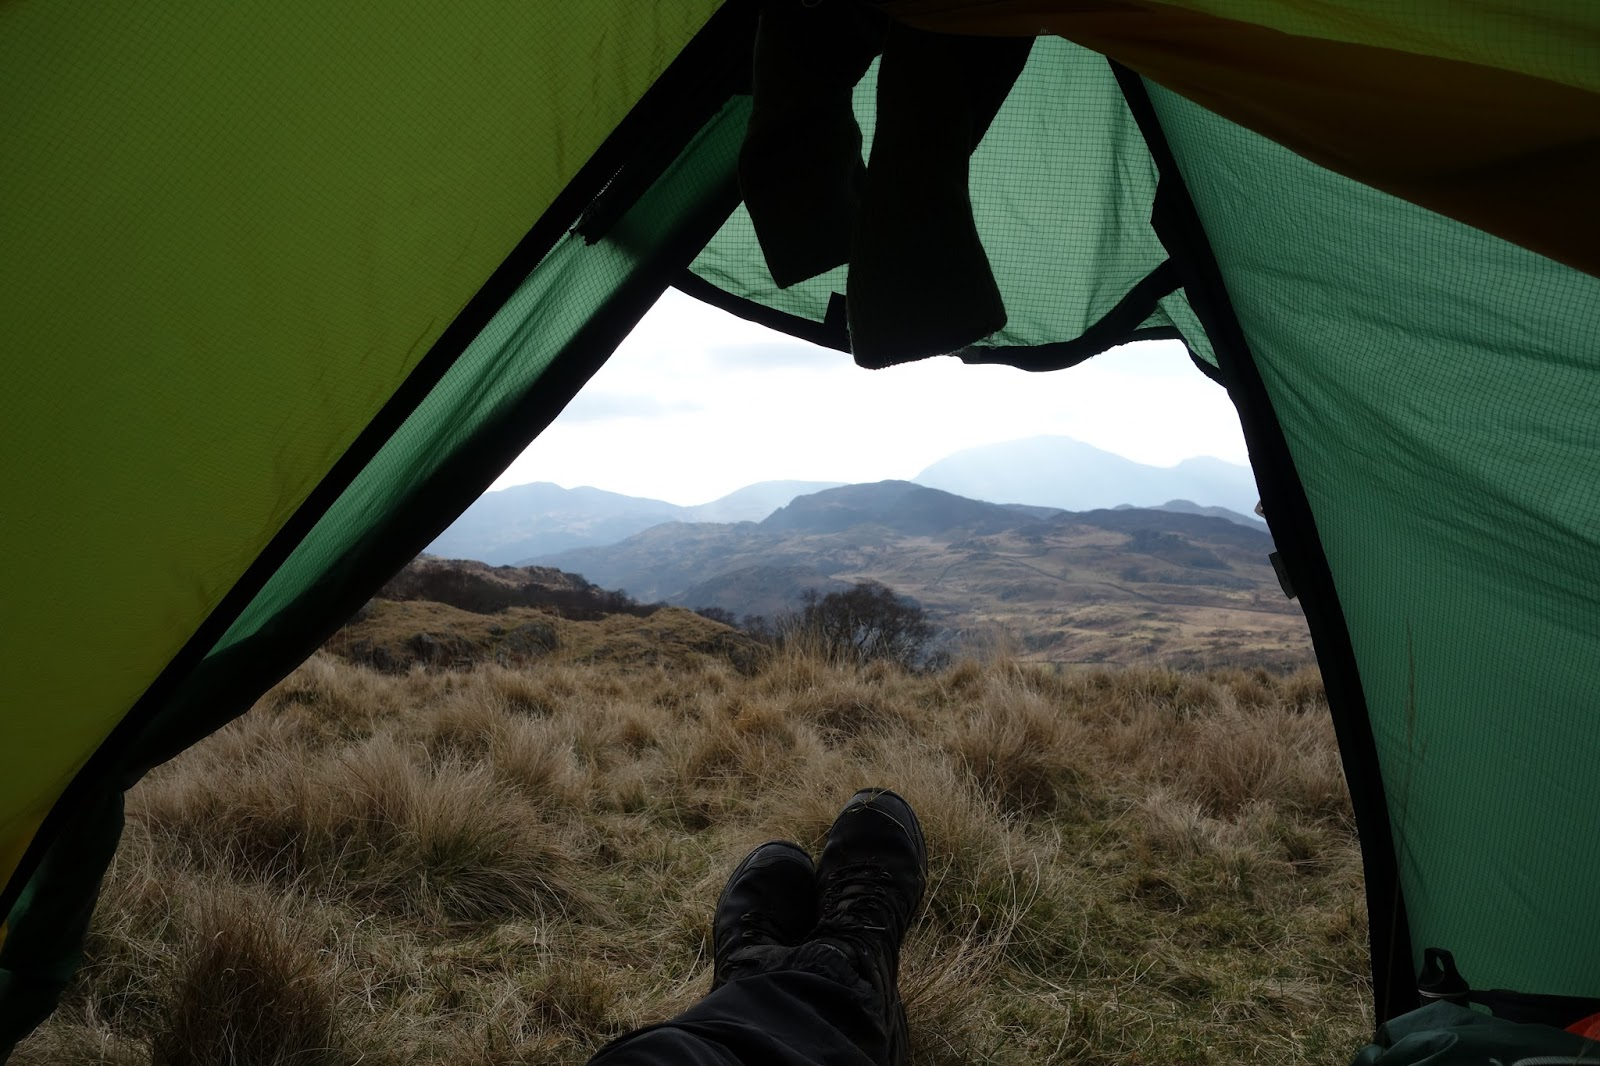 Looking back to Snowdon from the tent